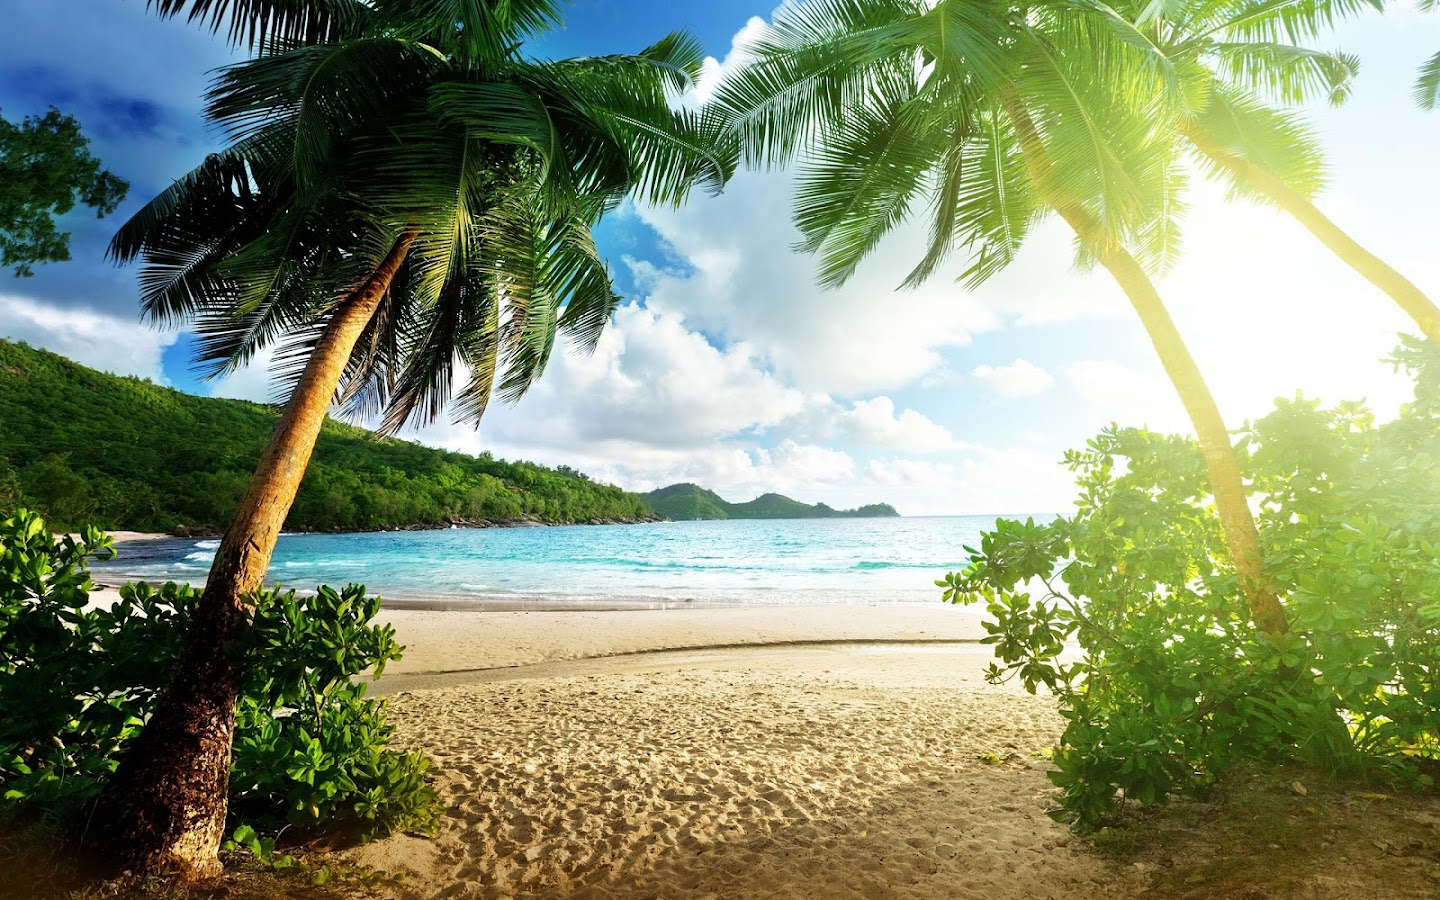 Paradise live wallpaper beautiful pictures 21 apk download paradise live wallpaper beautiful pictures 21 screenshot 6 voltagebd Gallery